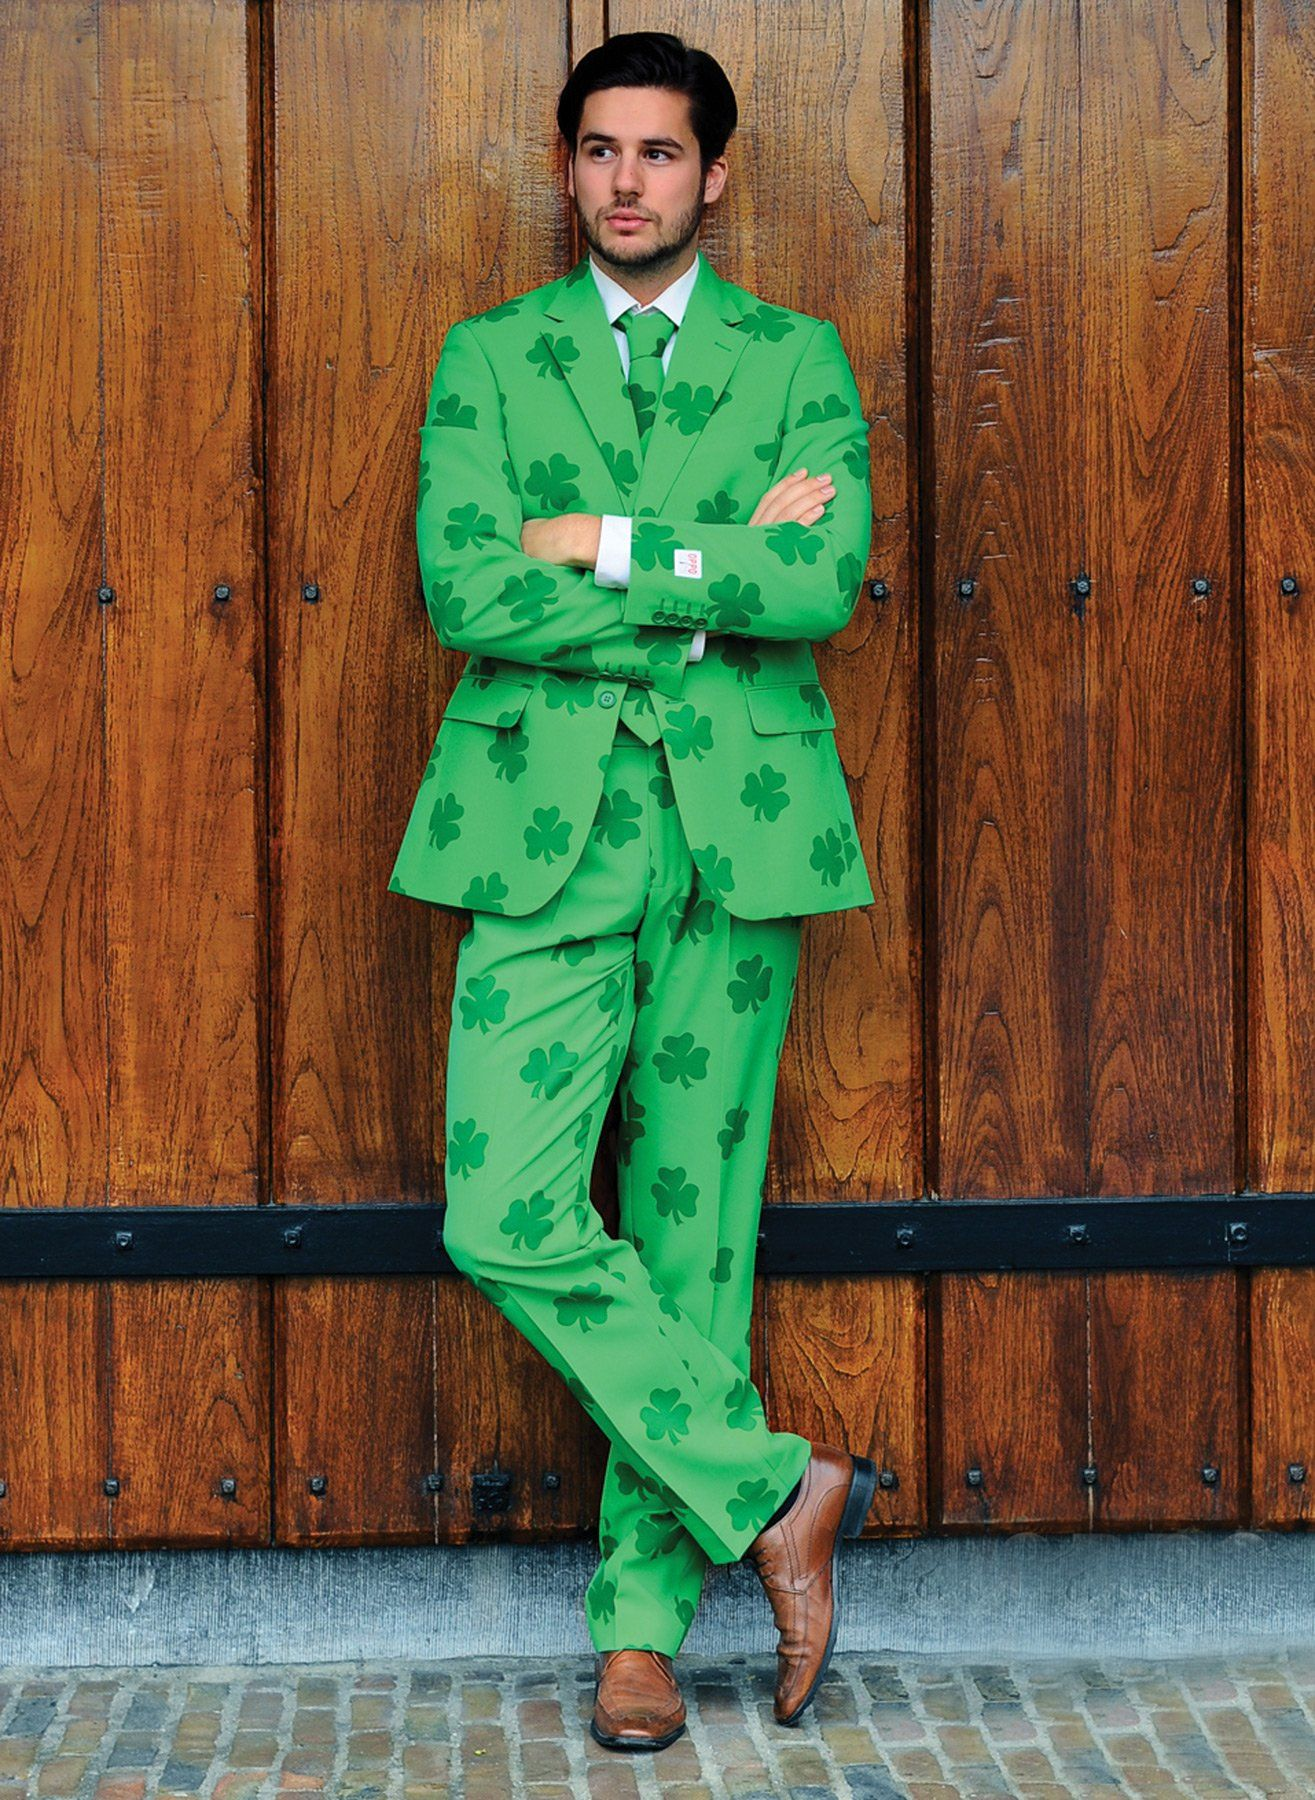 68d01fbe St Patrick Suit Size 38 Adult Costume | Products | St patrick's day ...